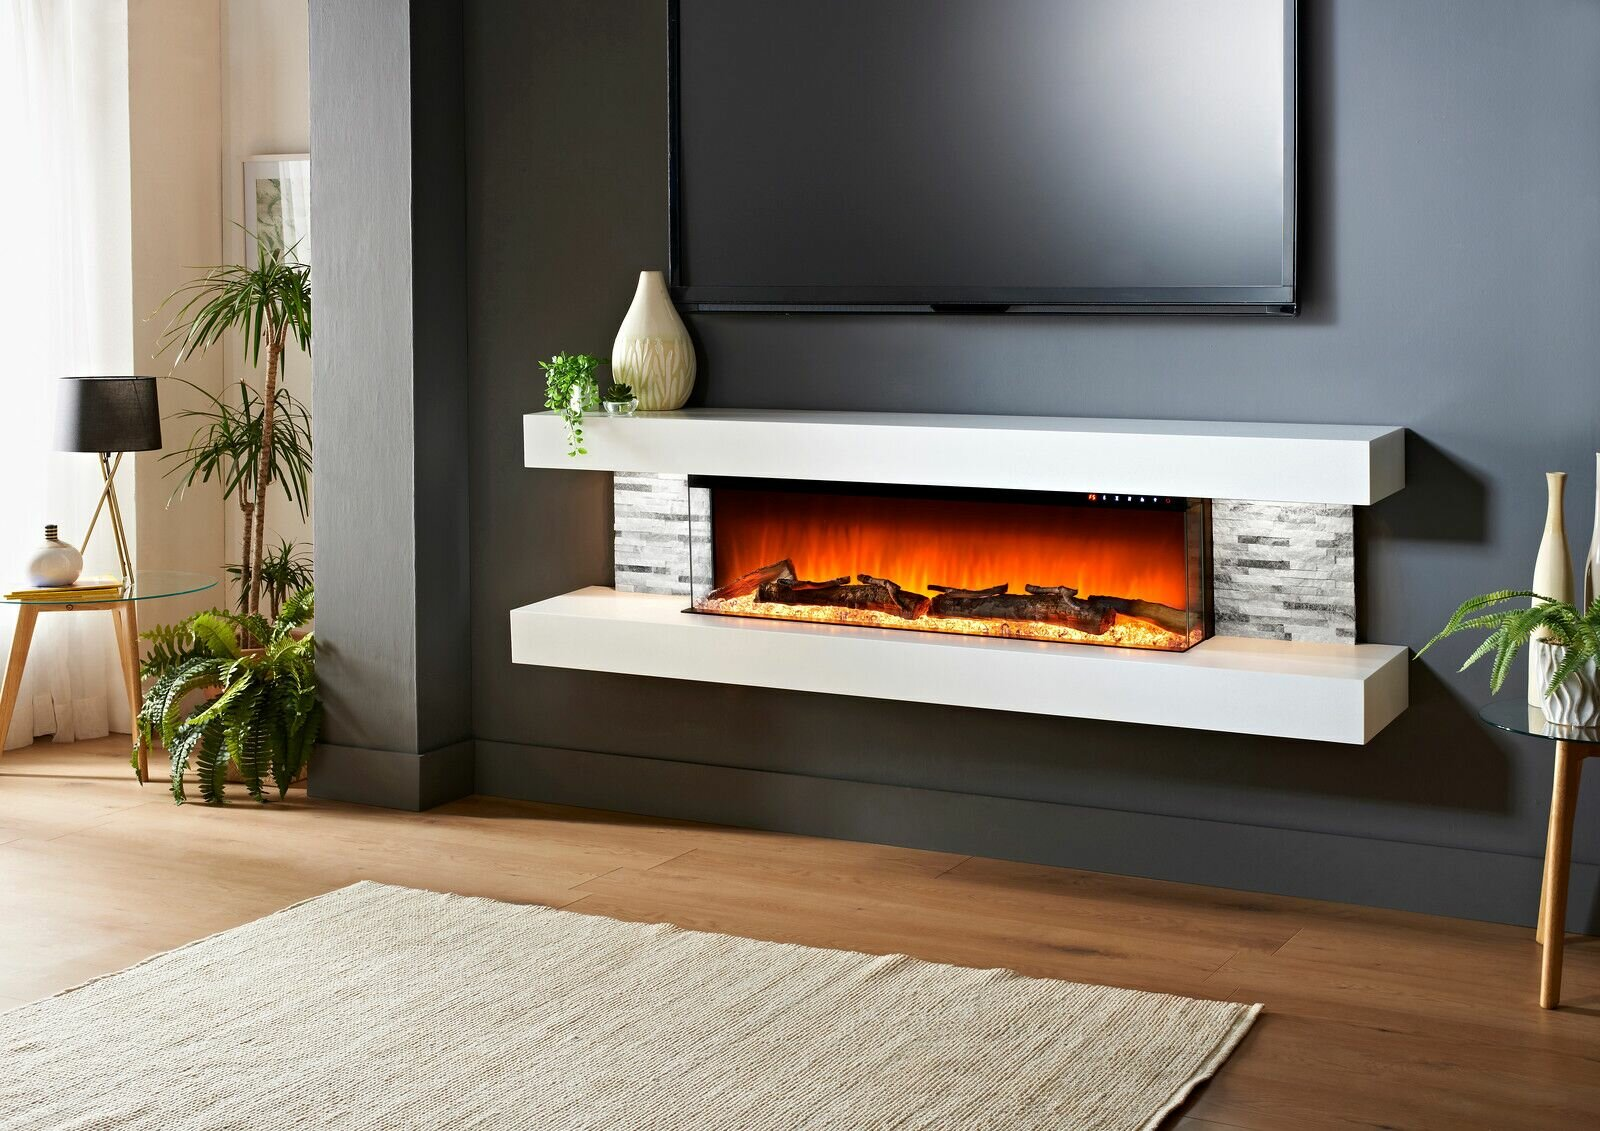 Orren Ellis Katlyn Wall Mounted Electric Fireplace Reviews Wayfair